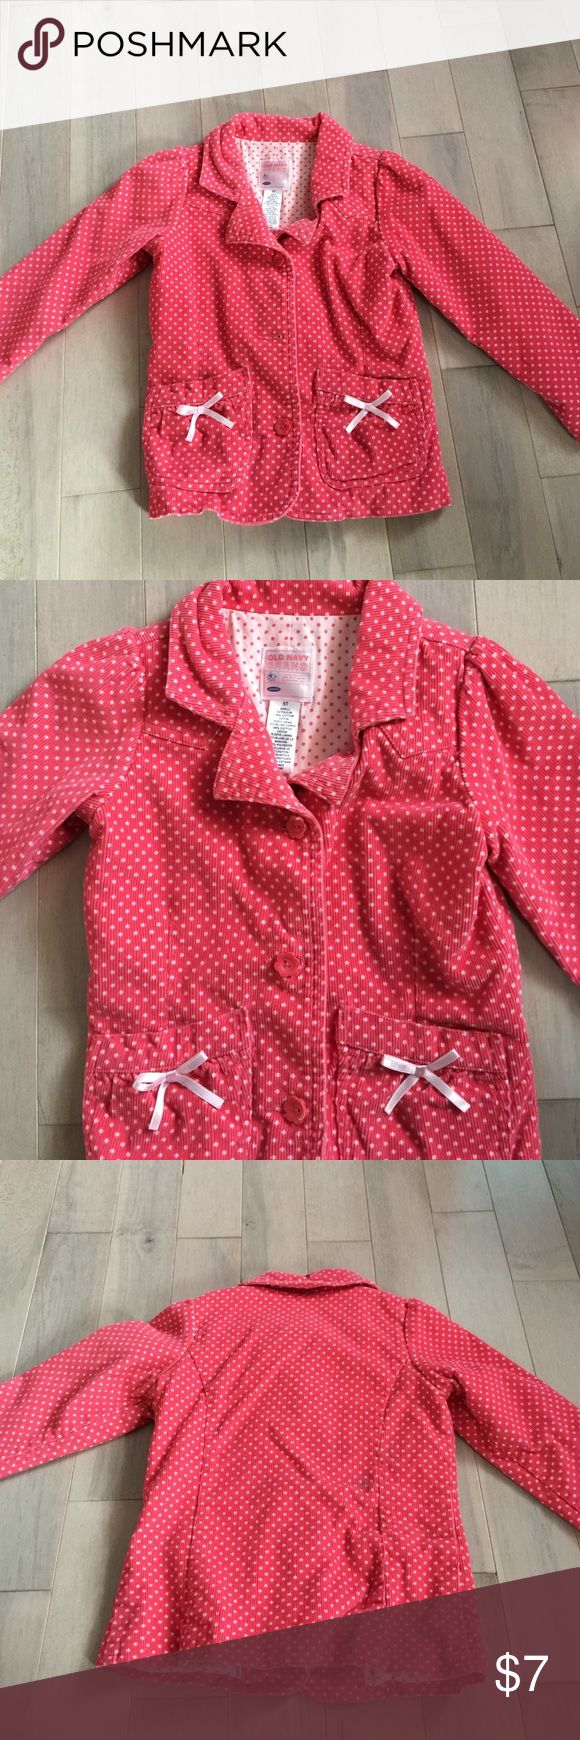 Girls jacket Cute pink and white dots with flower buttons. Two pockets in front with little bows. Took a pic of the back. It has 2 pen stains and shows in price. Old Navy Jackets & Coats